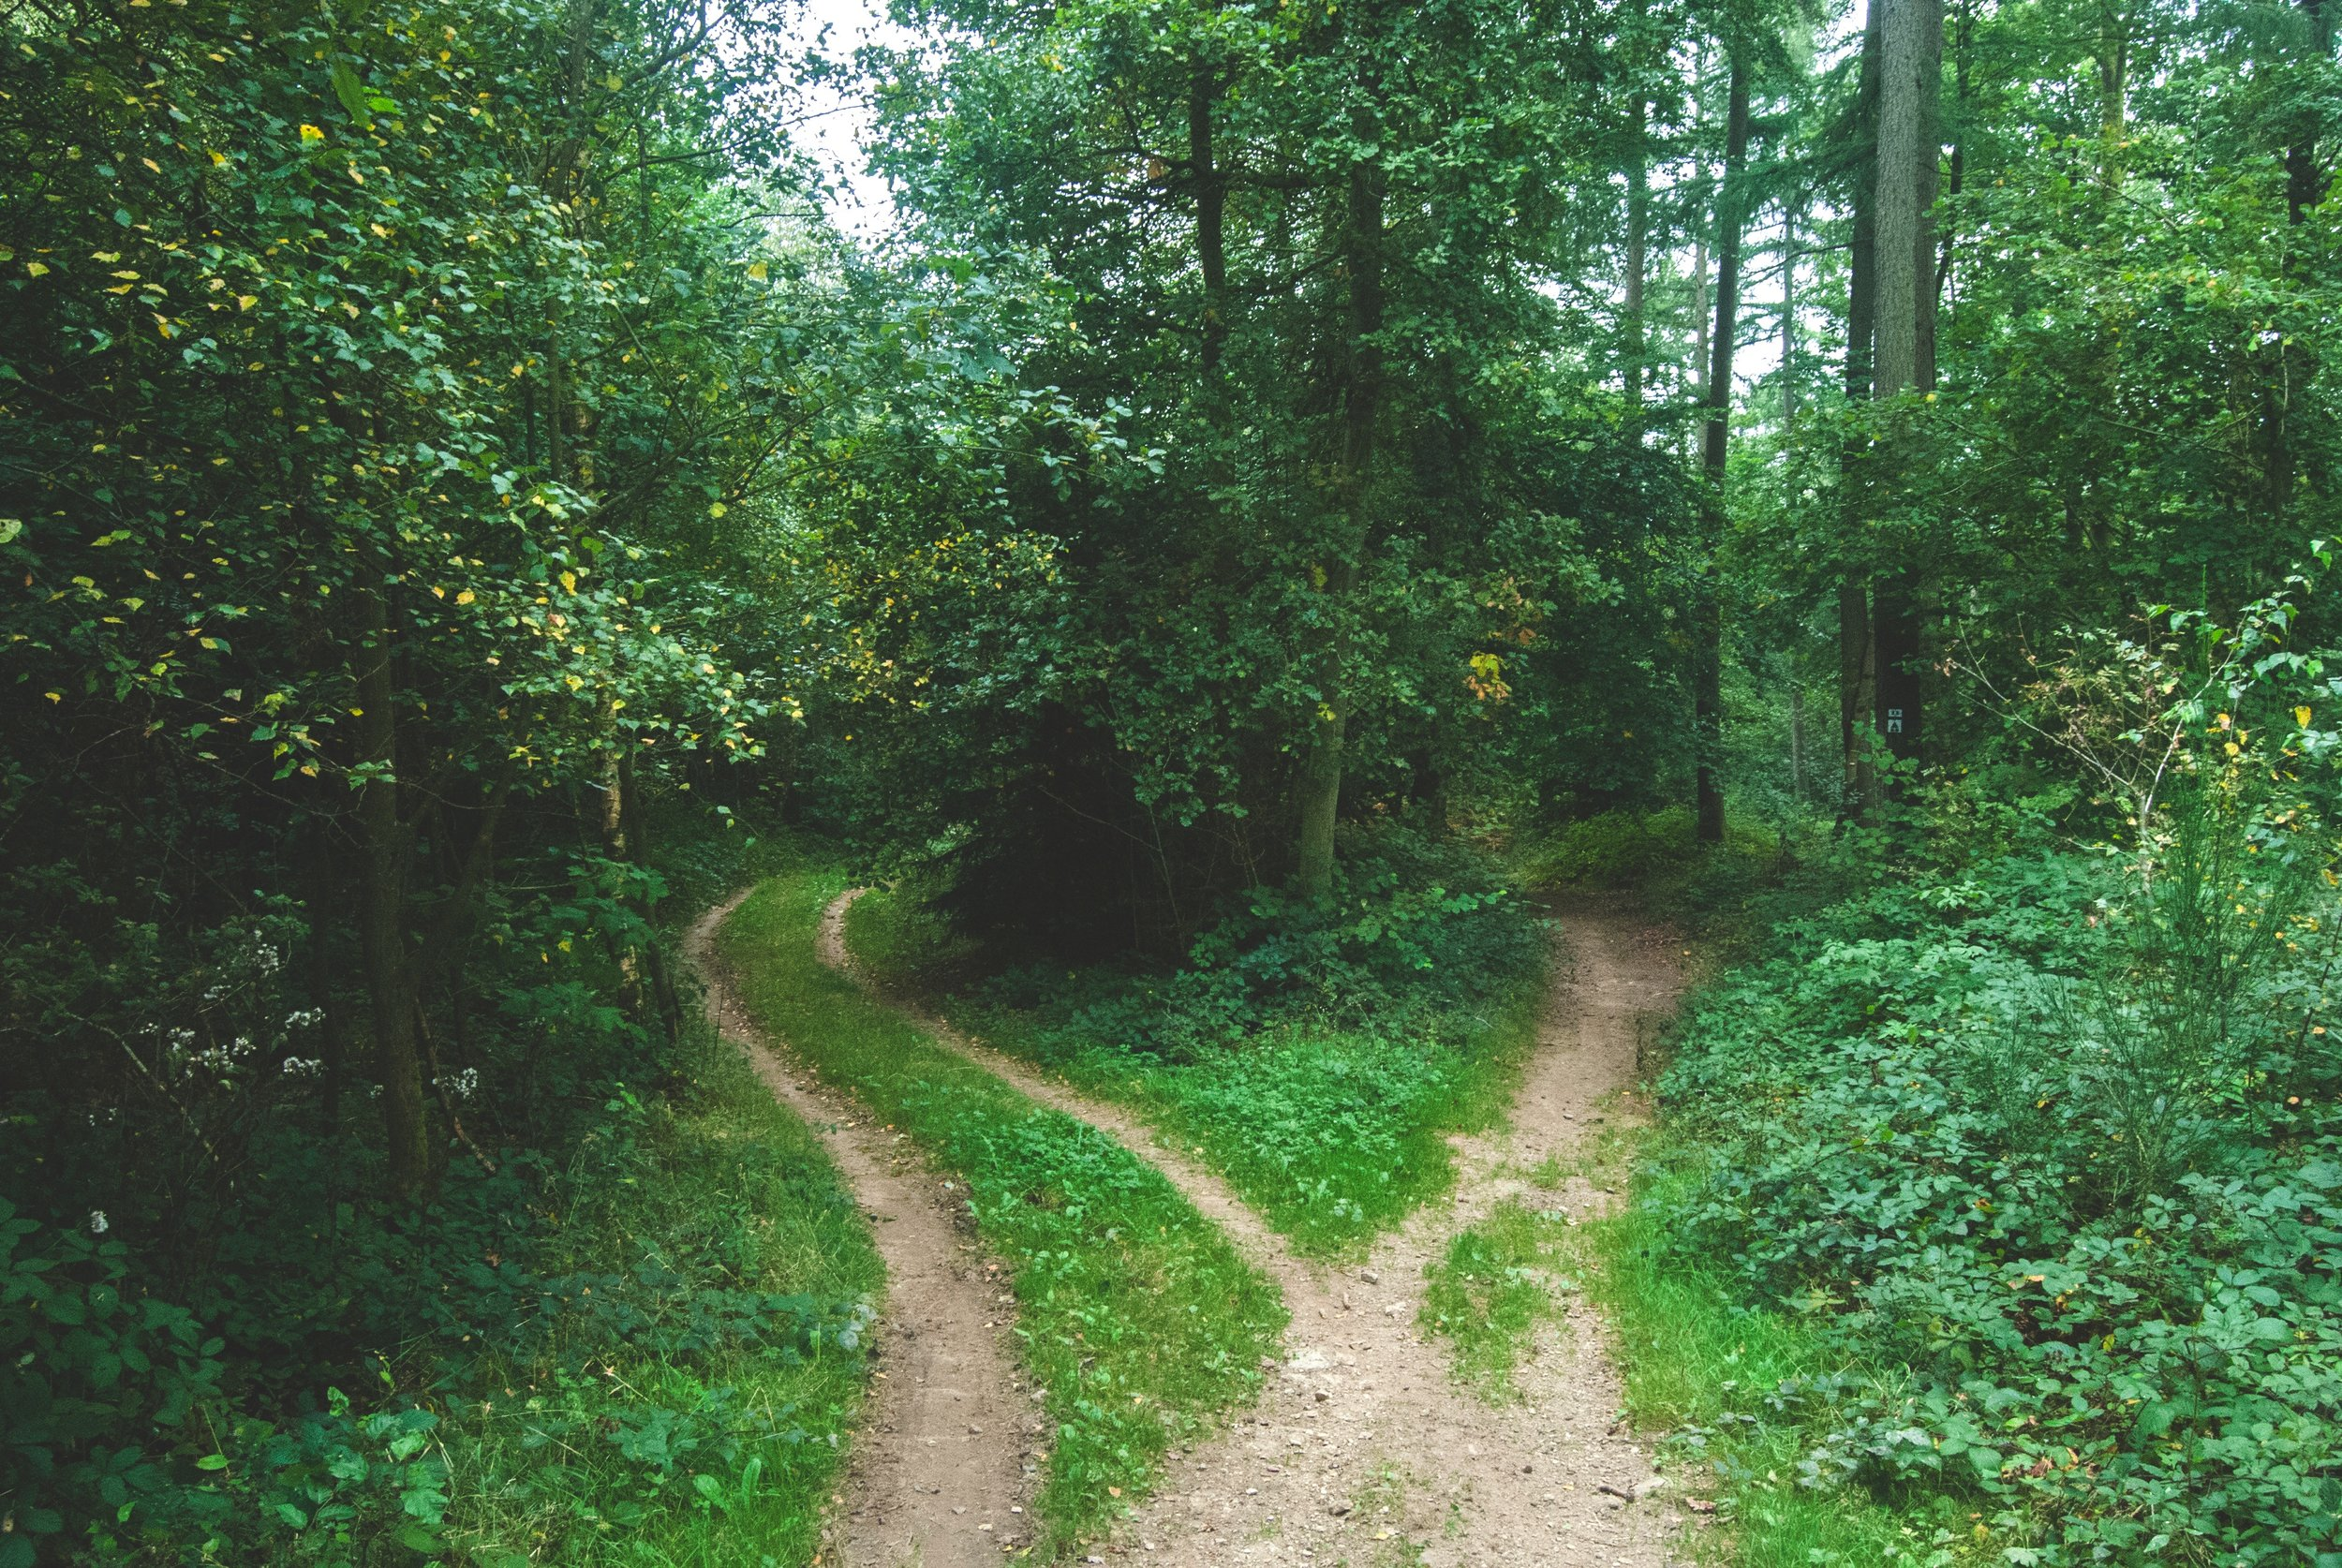 An animated guide to nature's best wayfinding secrets - Learn to navigate with the moon, stars, trees, and more.Atlas Obscura, July 2017